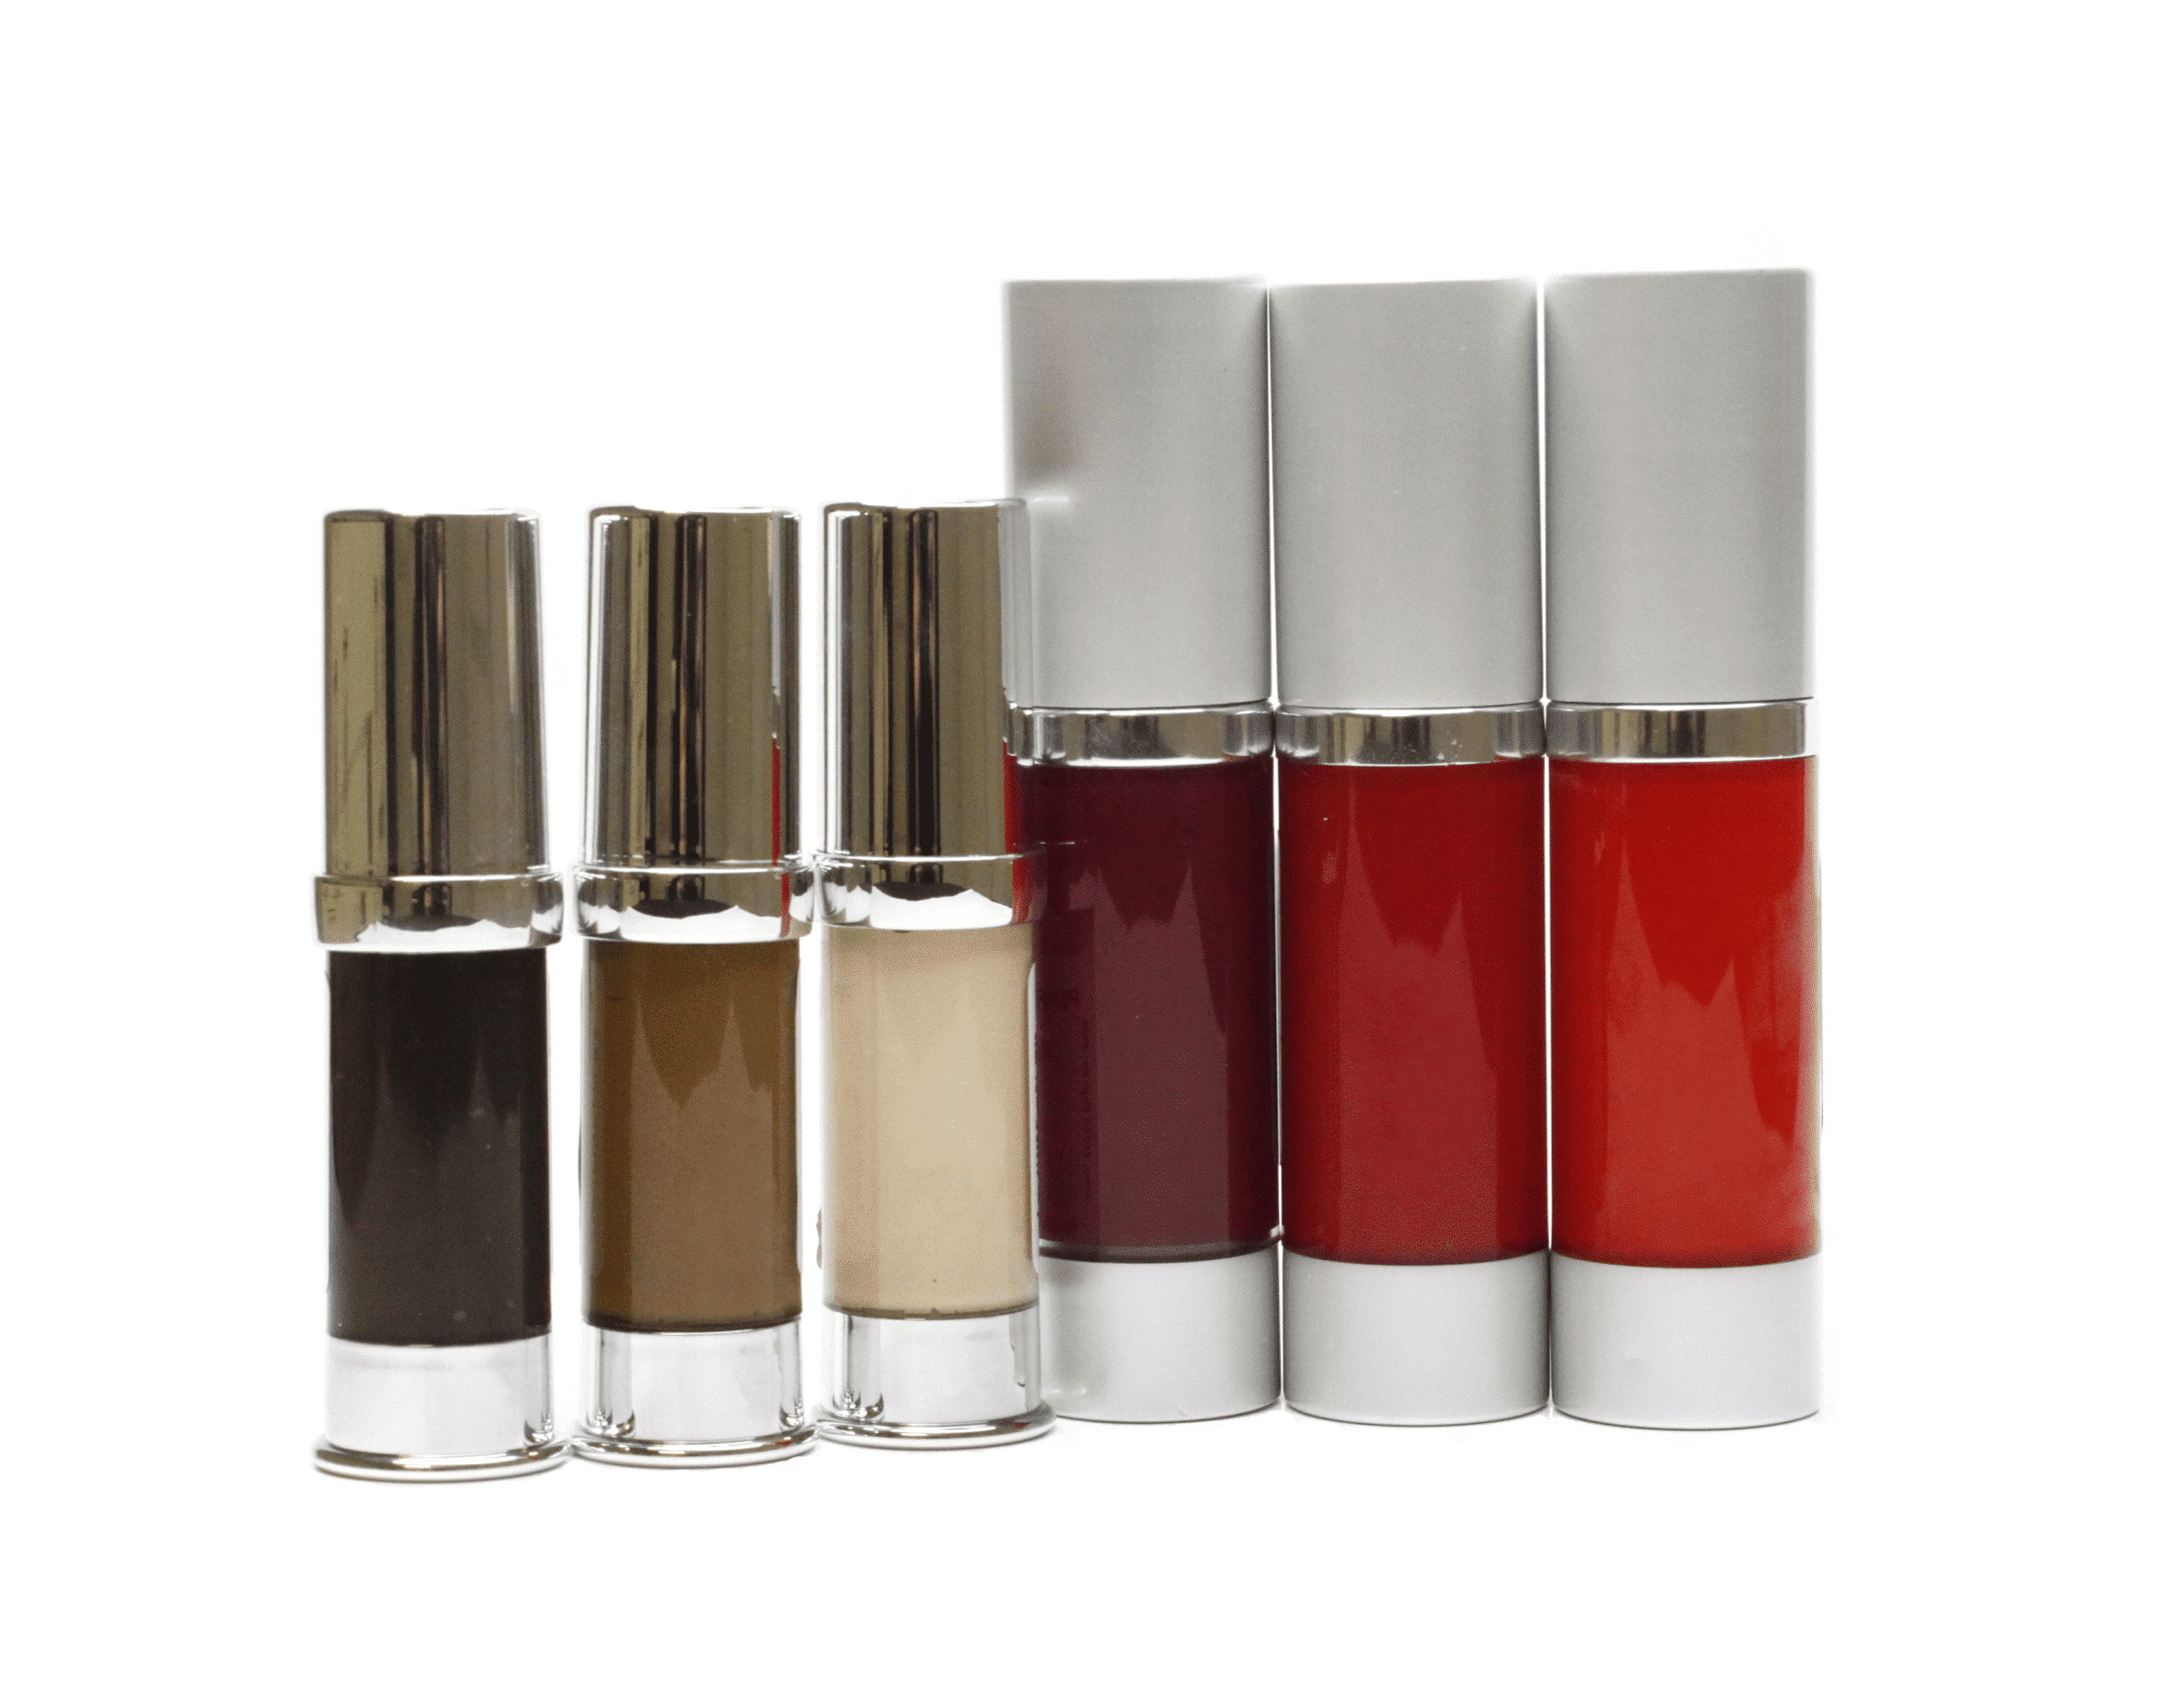 The Pigments 6